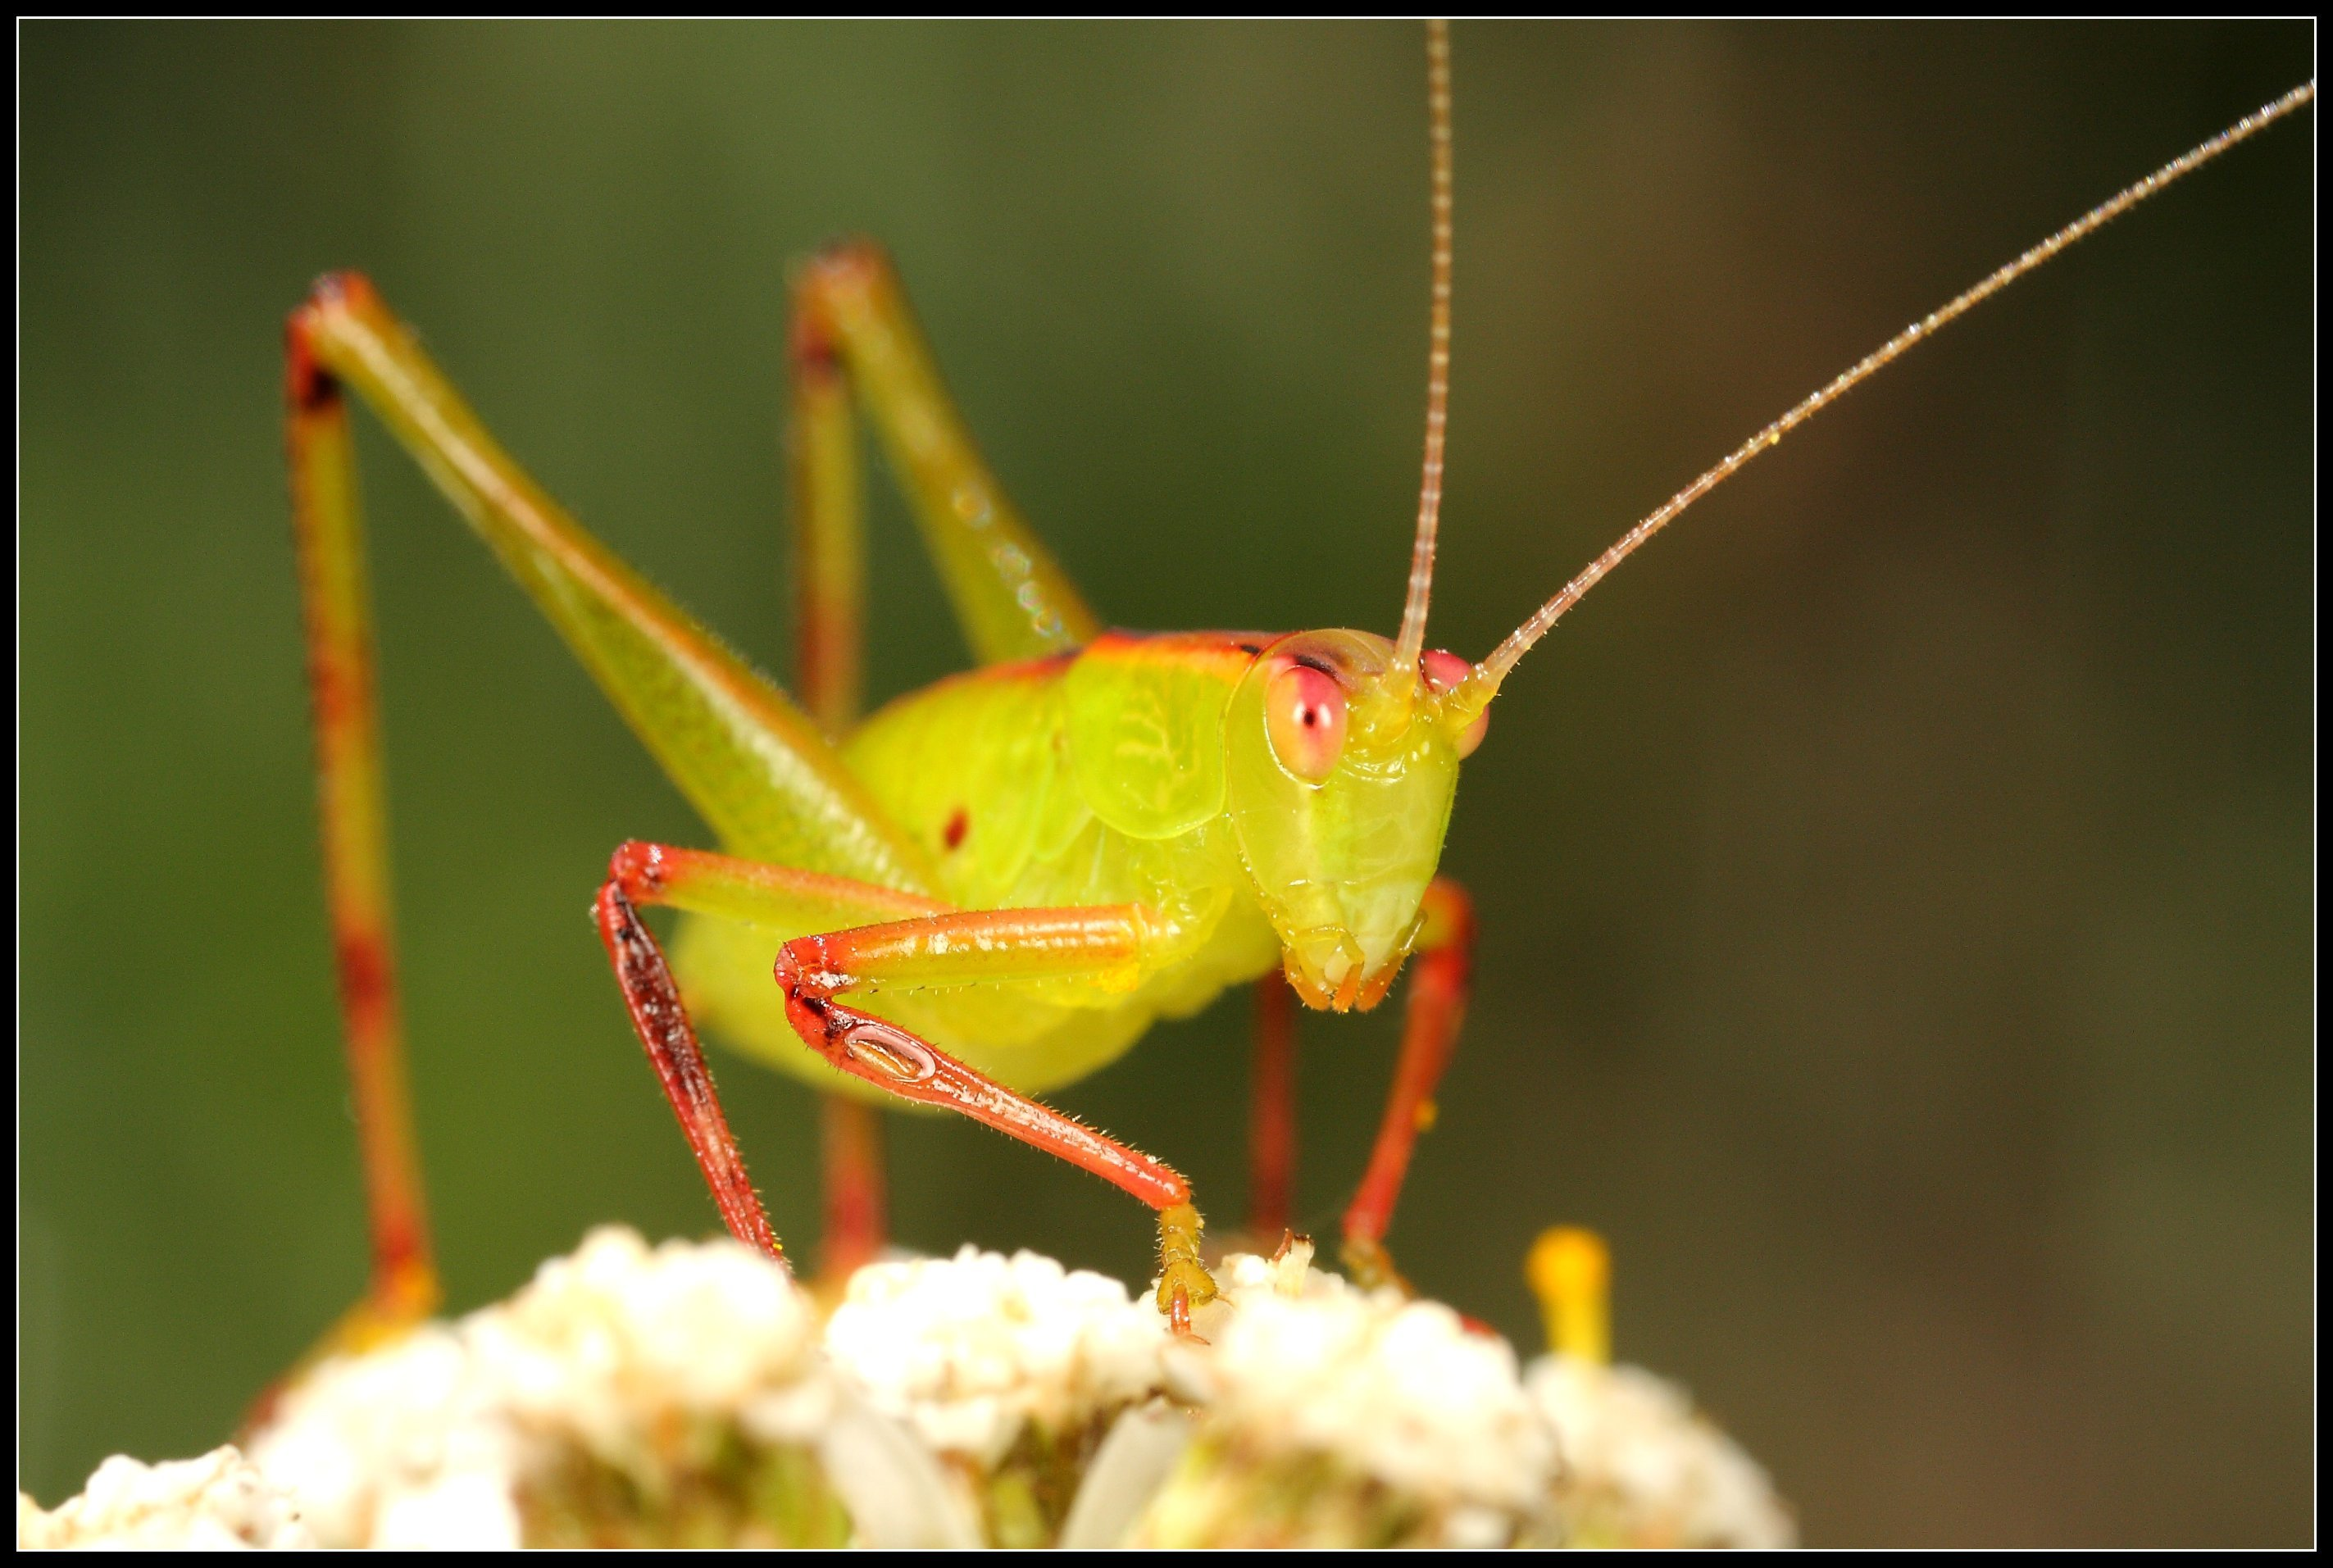 insects grasshopper HD Wallpaper